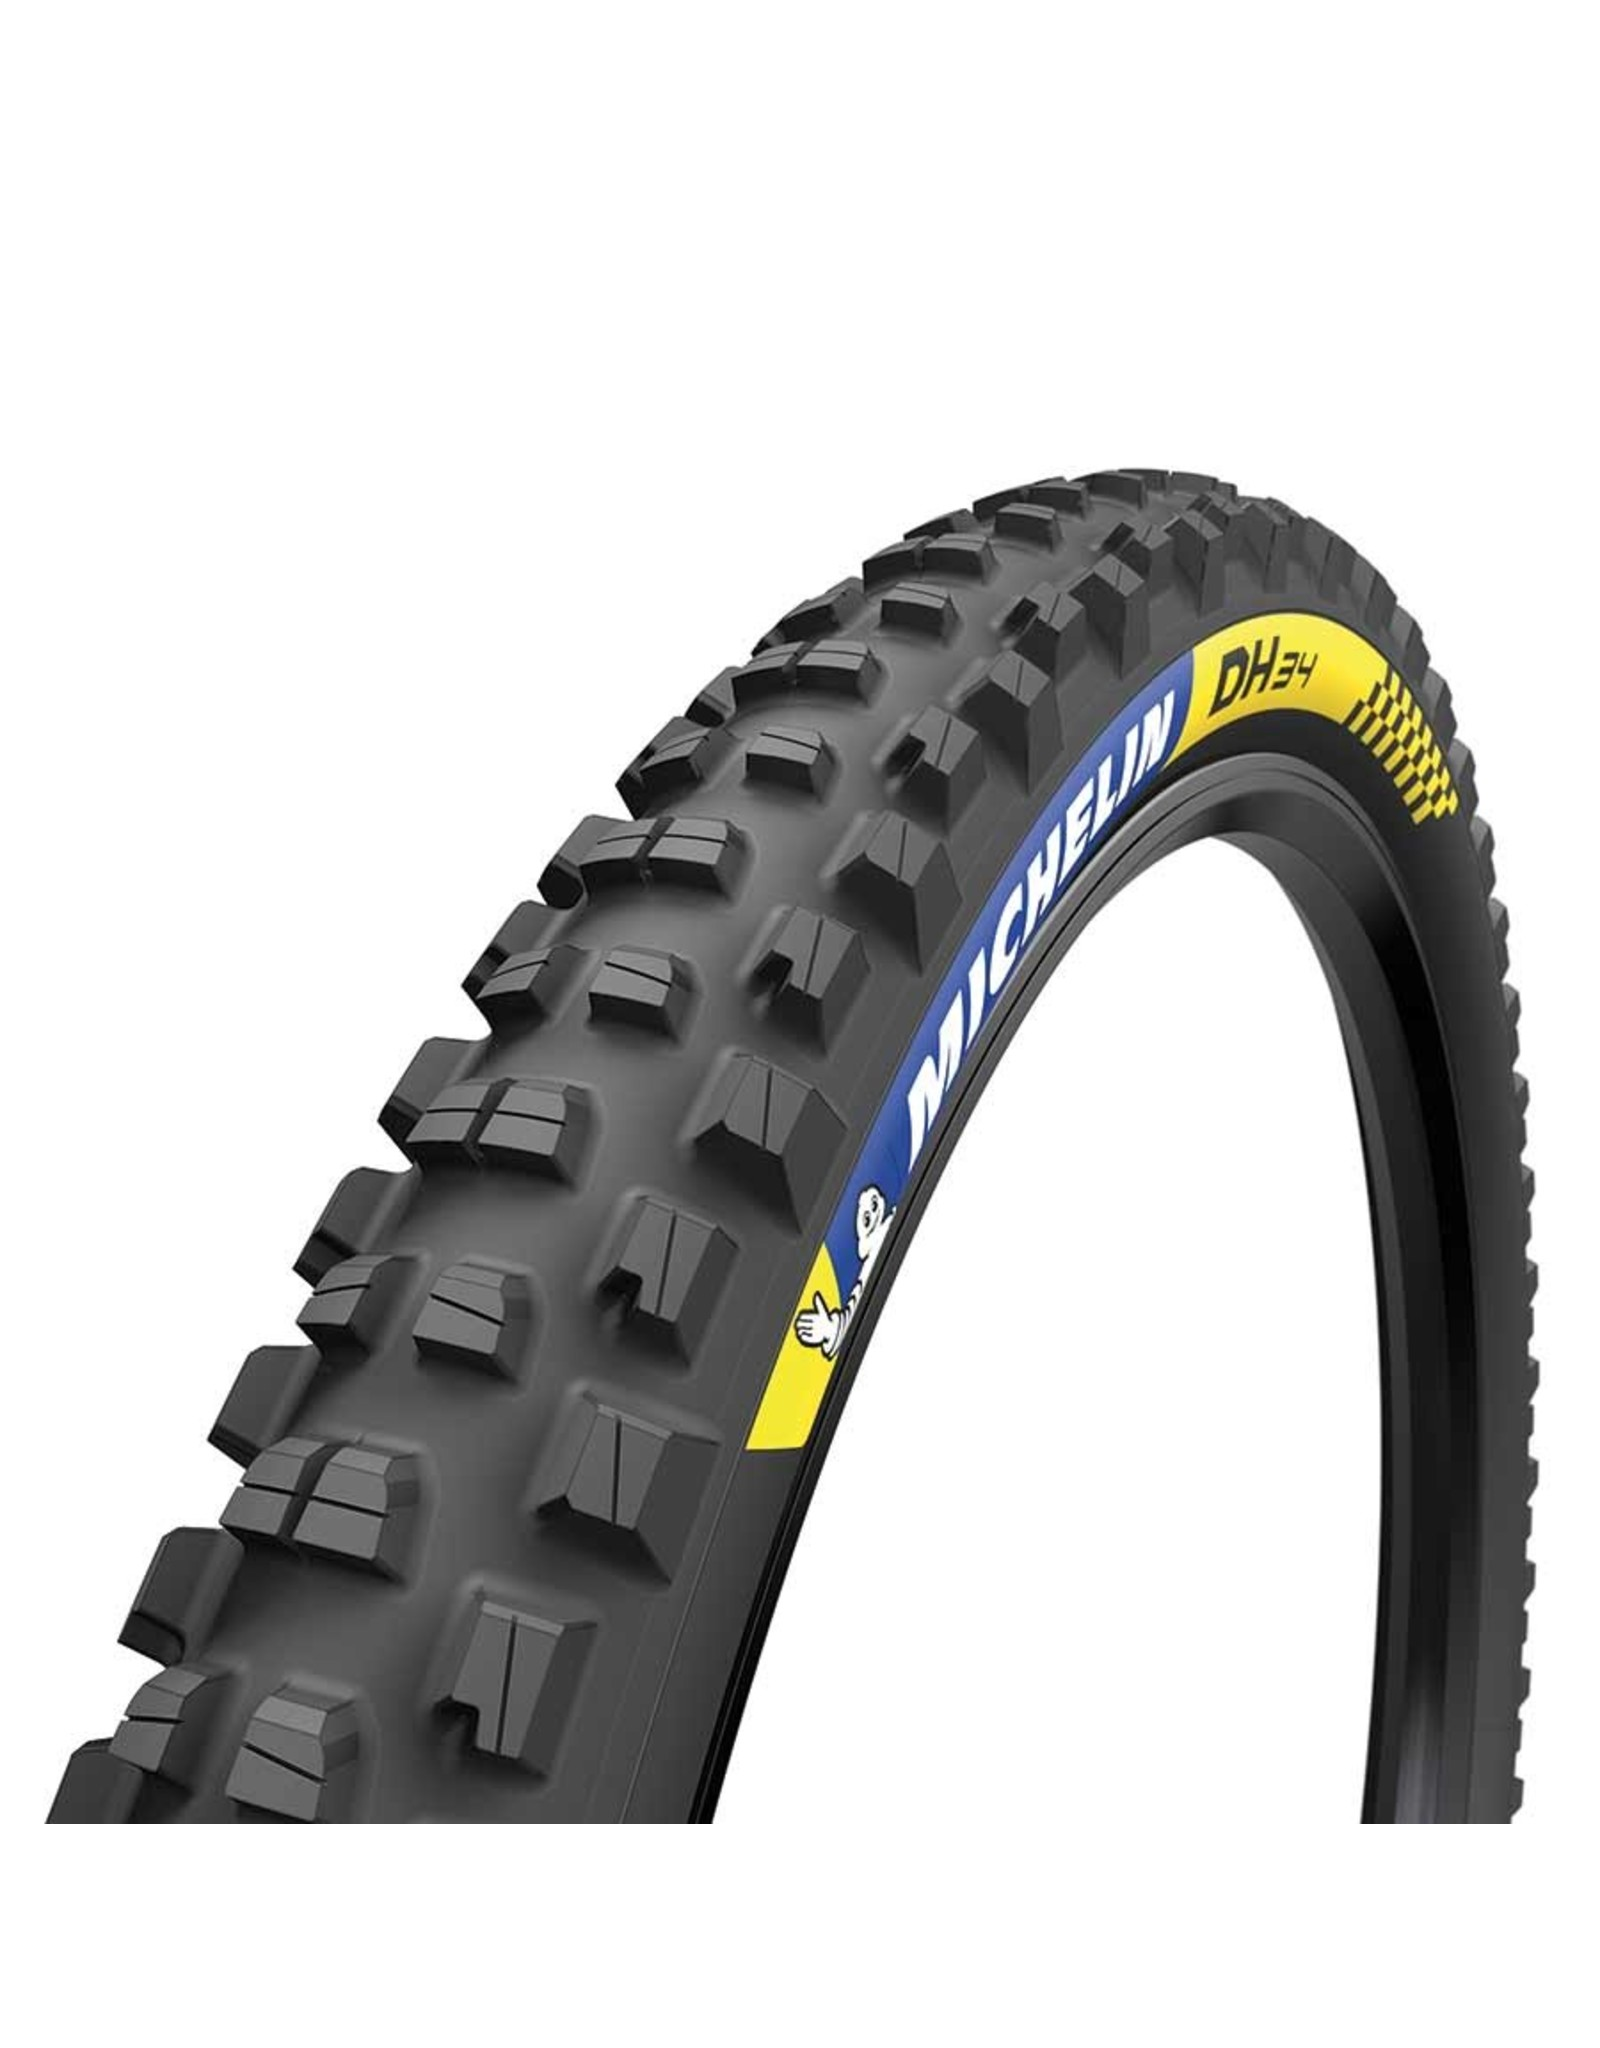 Michelin Michelin, DH34, Tire, 27.5''x2.40